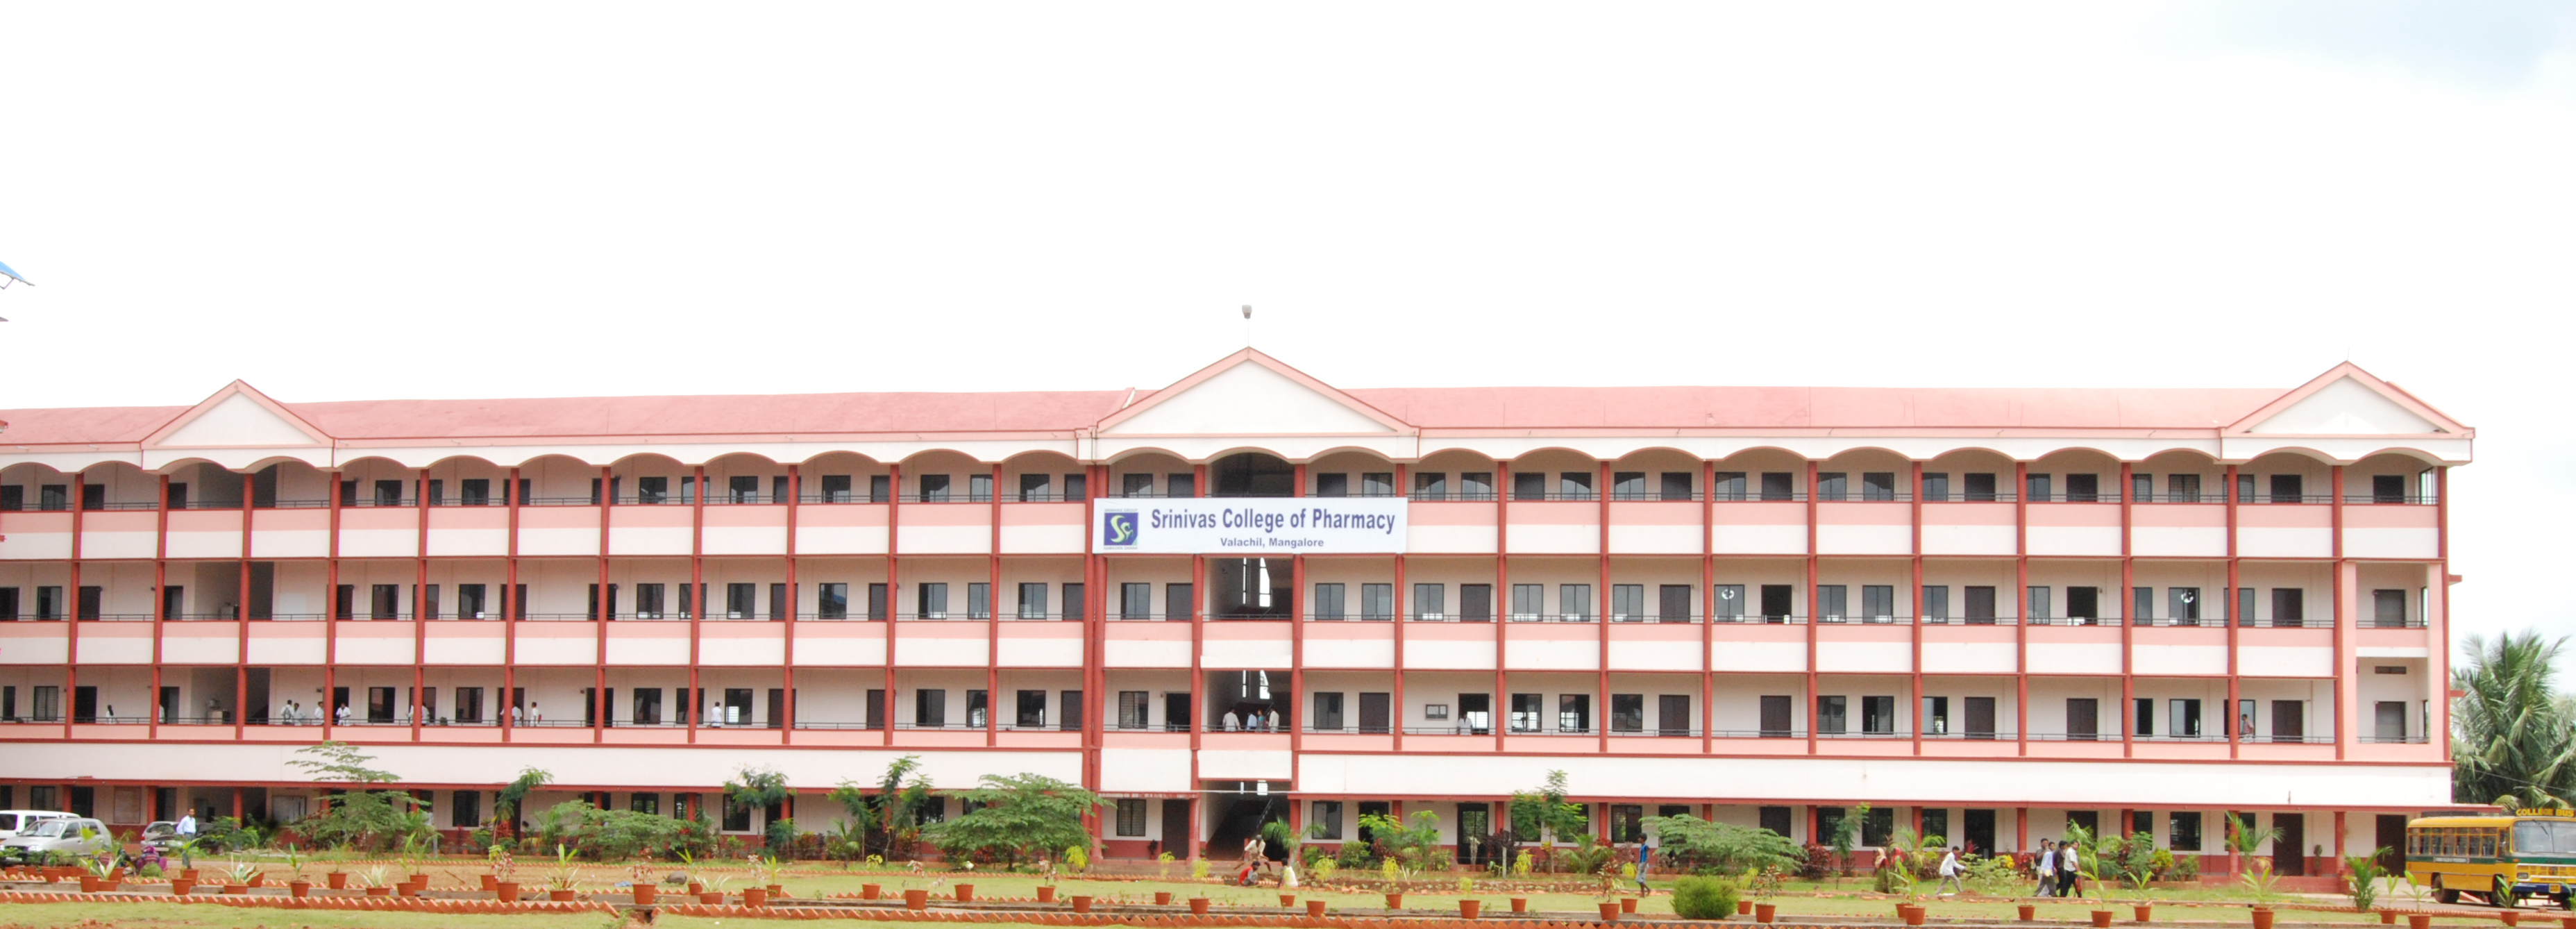 SRINIVASA COLLEGE MANGALORE